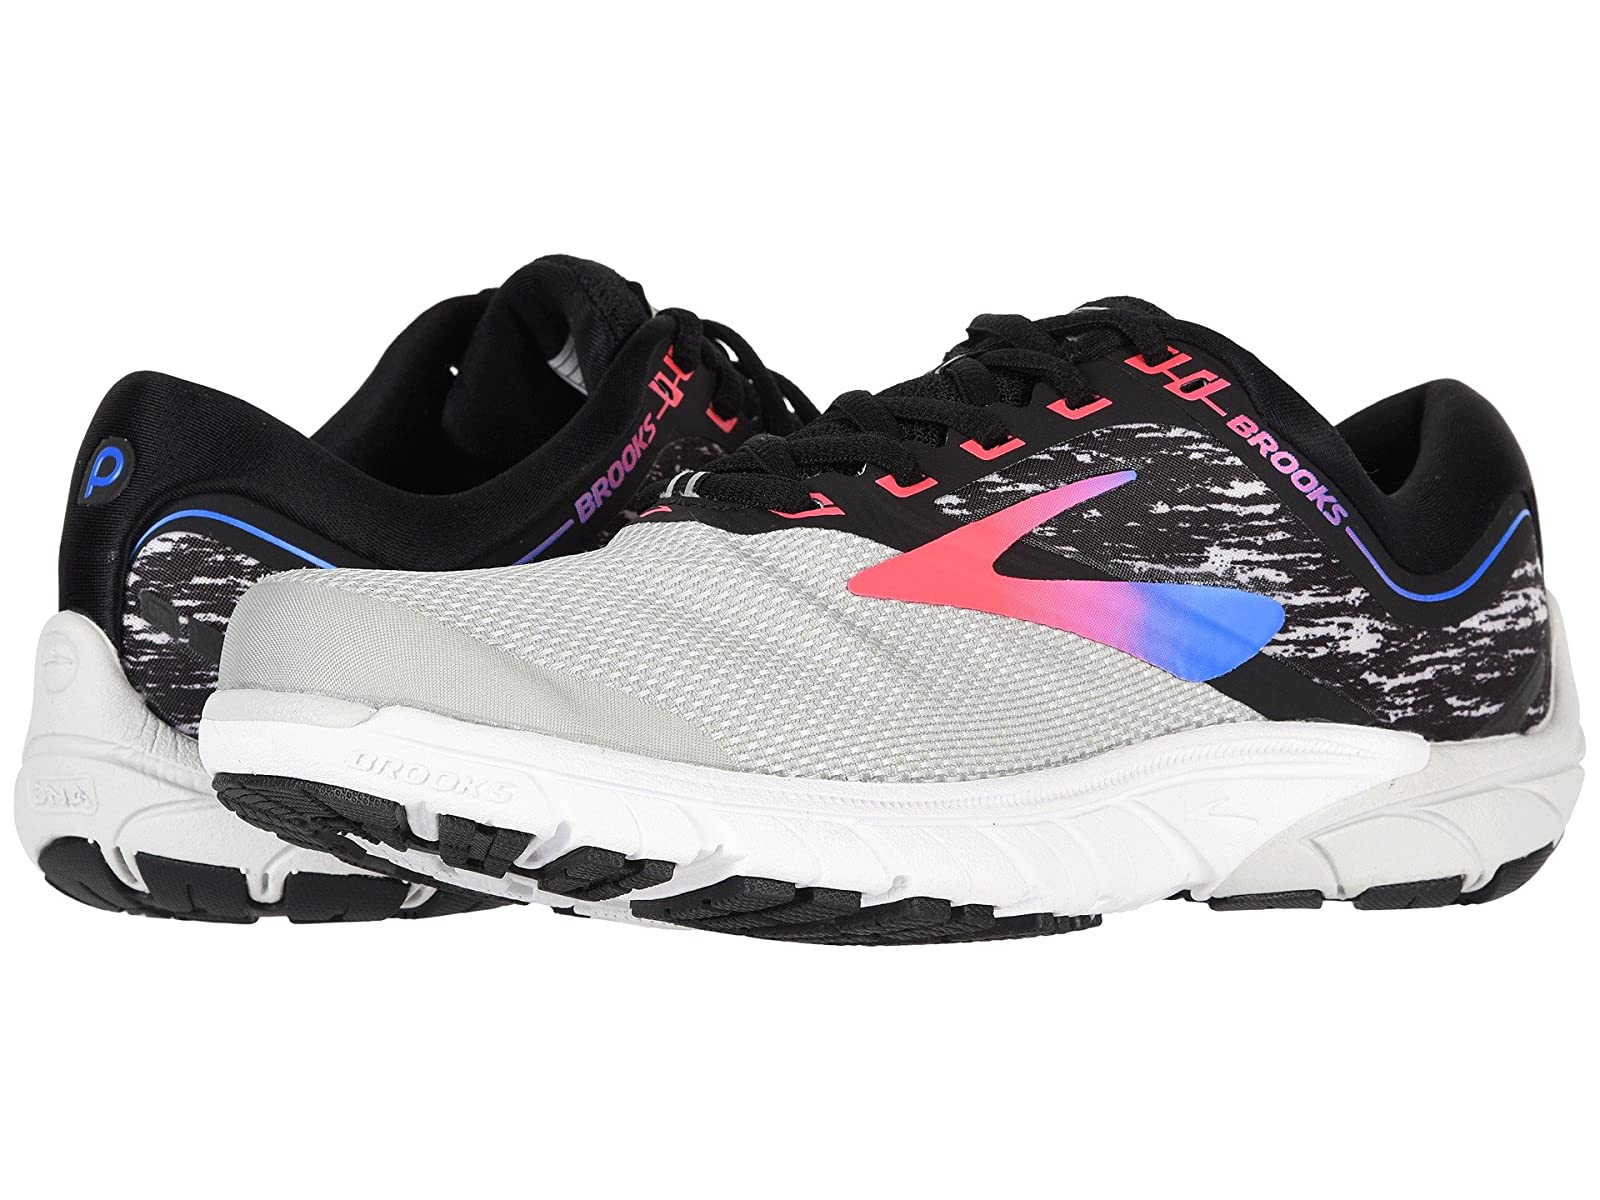 Brooks PureCadence 7Atmospheric grades have affordable shoes